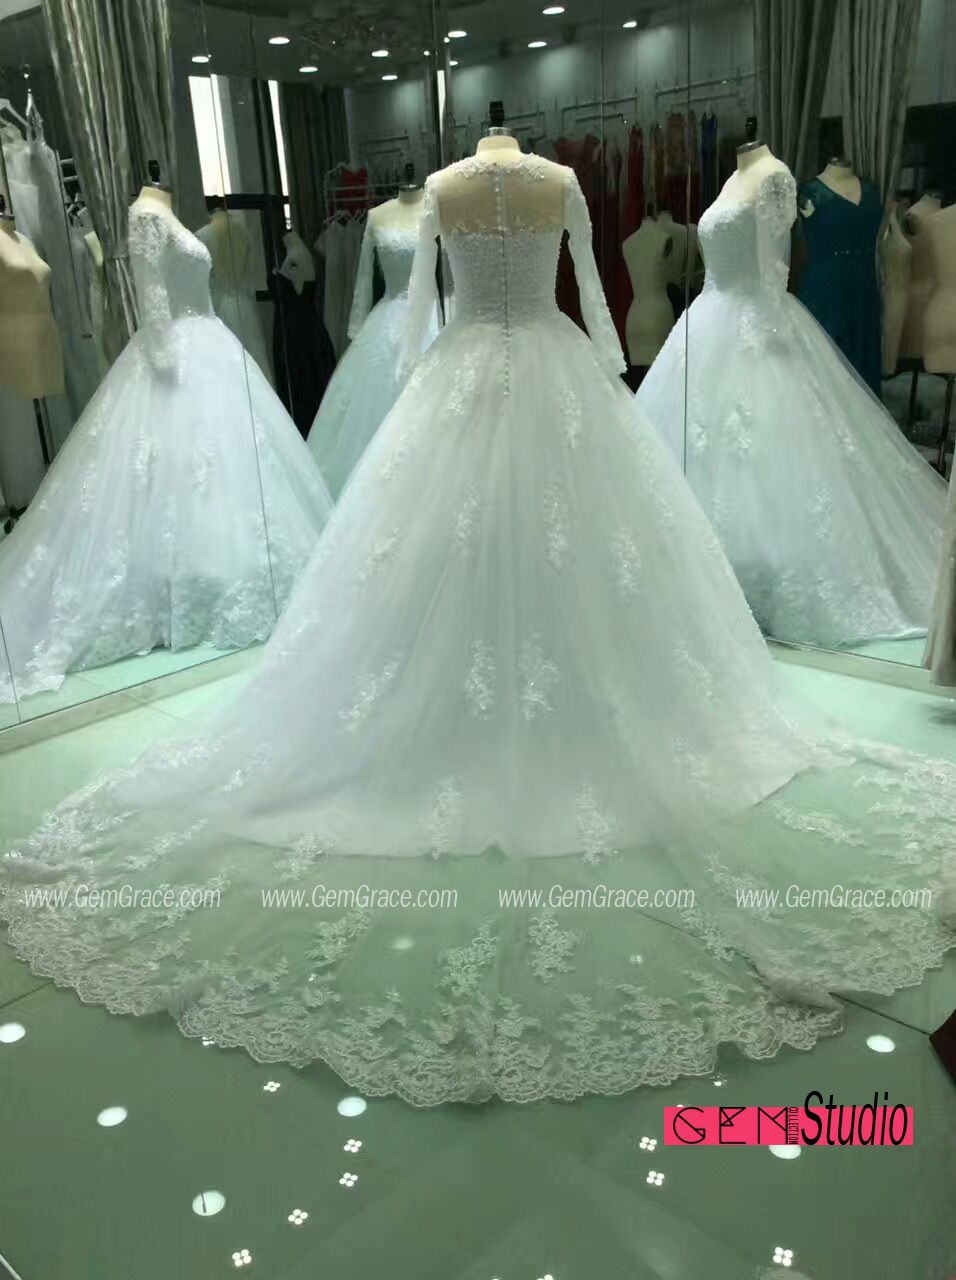 Custom Lace Ballgown Formal Wedding Dress with Lace Sleeves. Custom ...